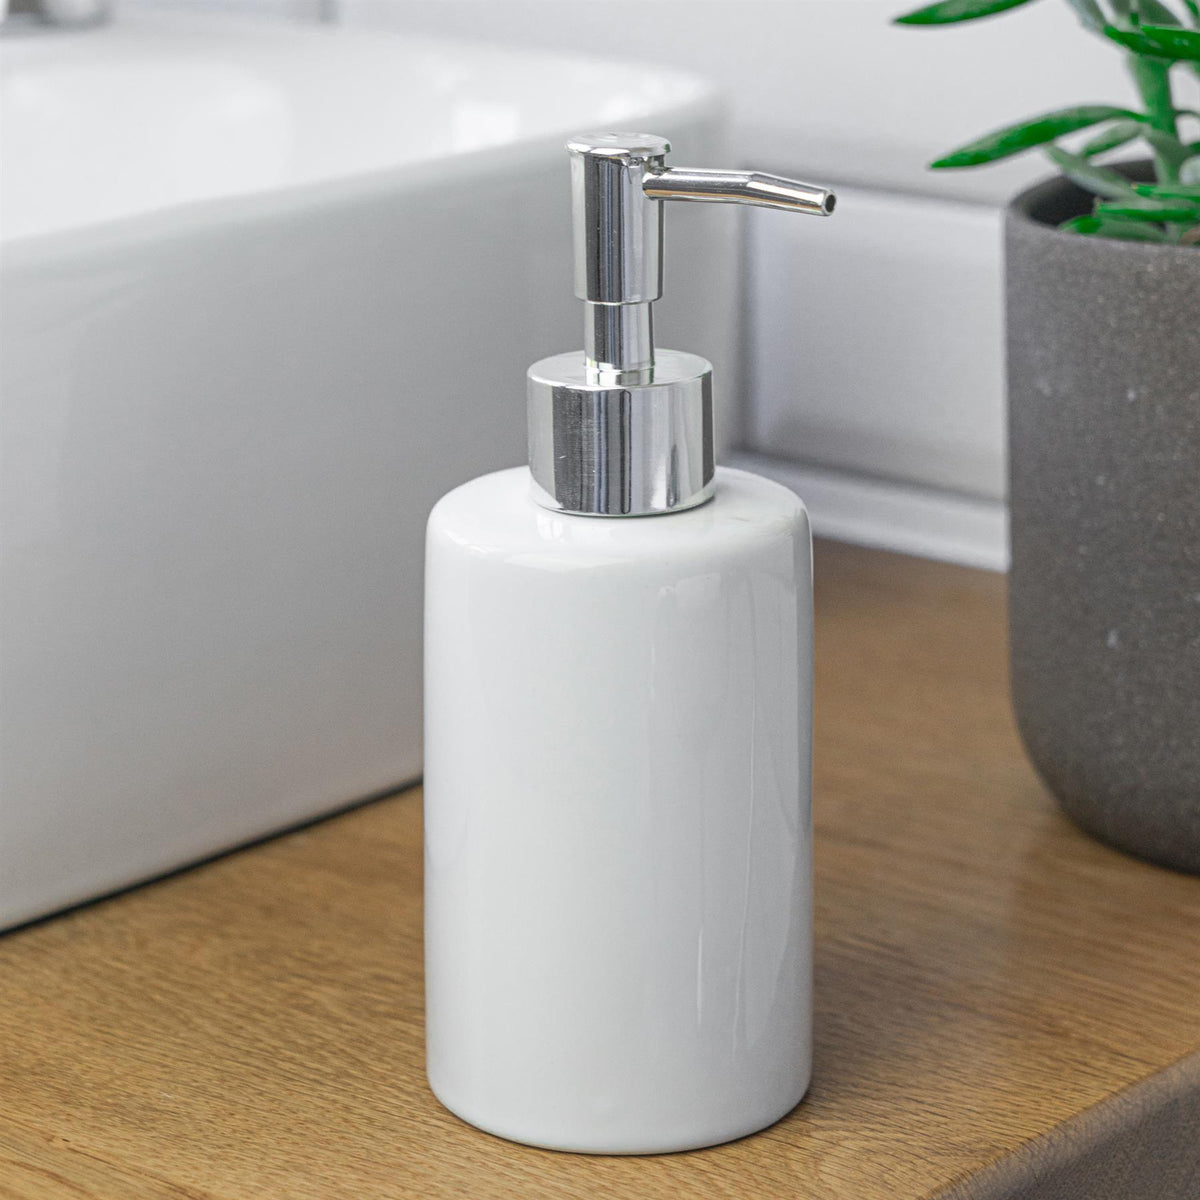 Harbour Housewares Ceramic Soap Dispenser - White